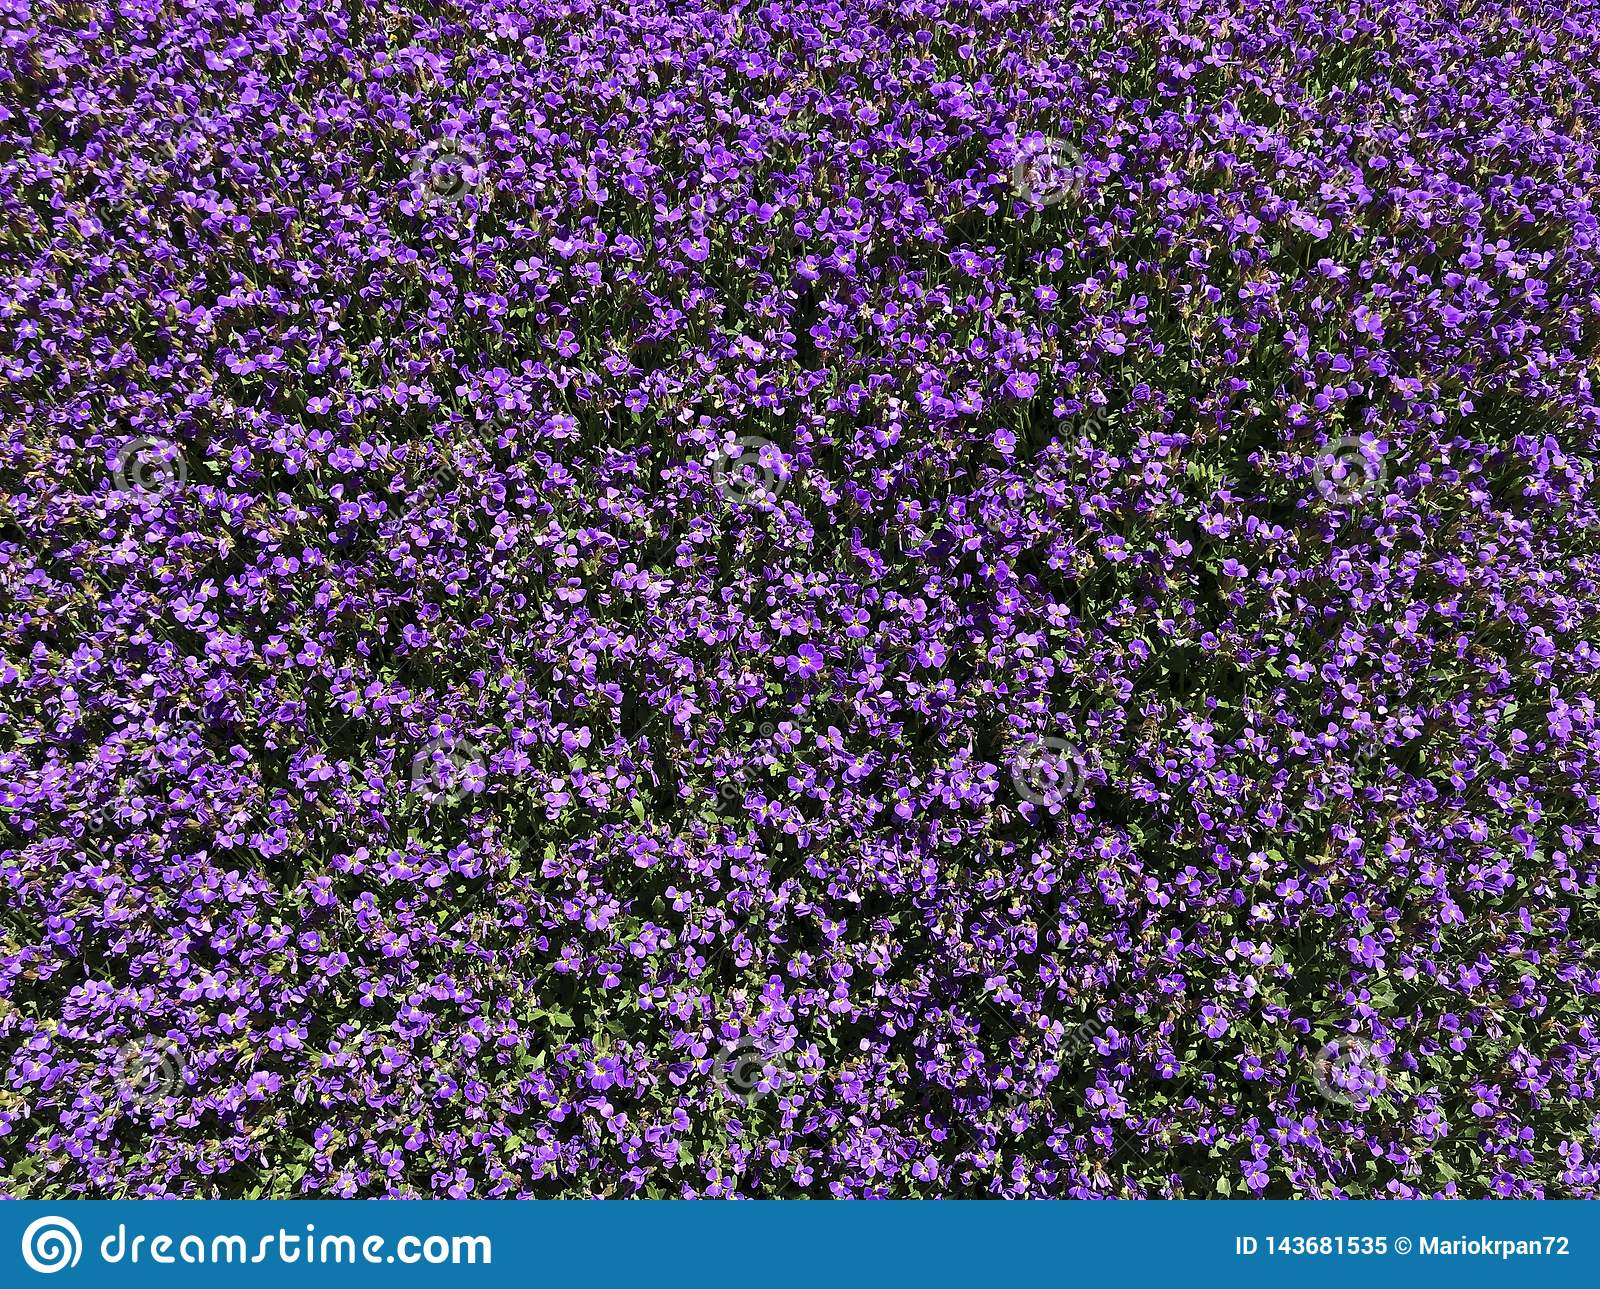 Background with decorative purple Alpine garden flowers